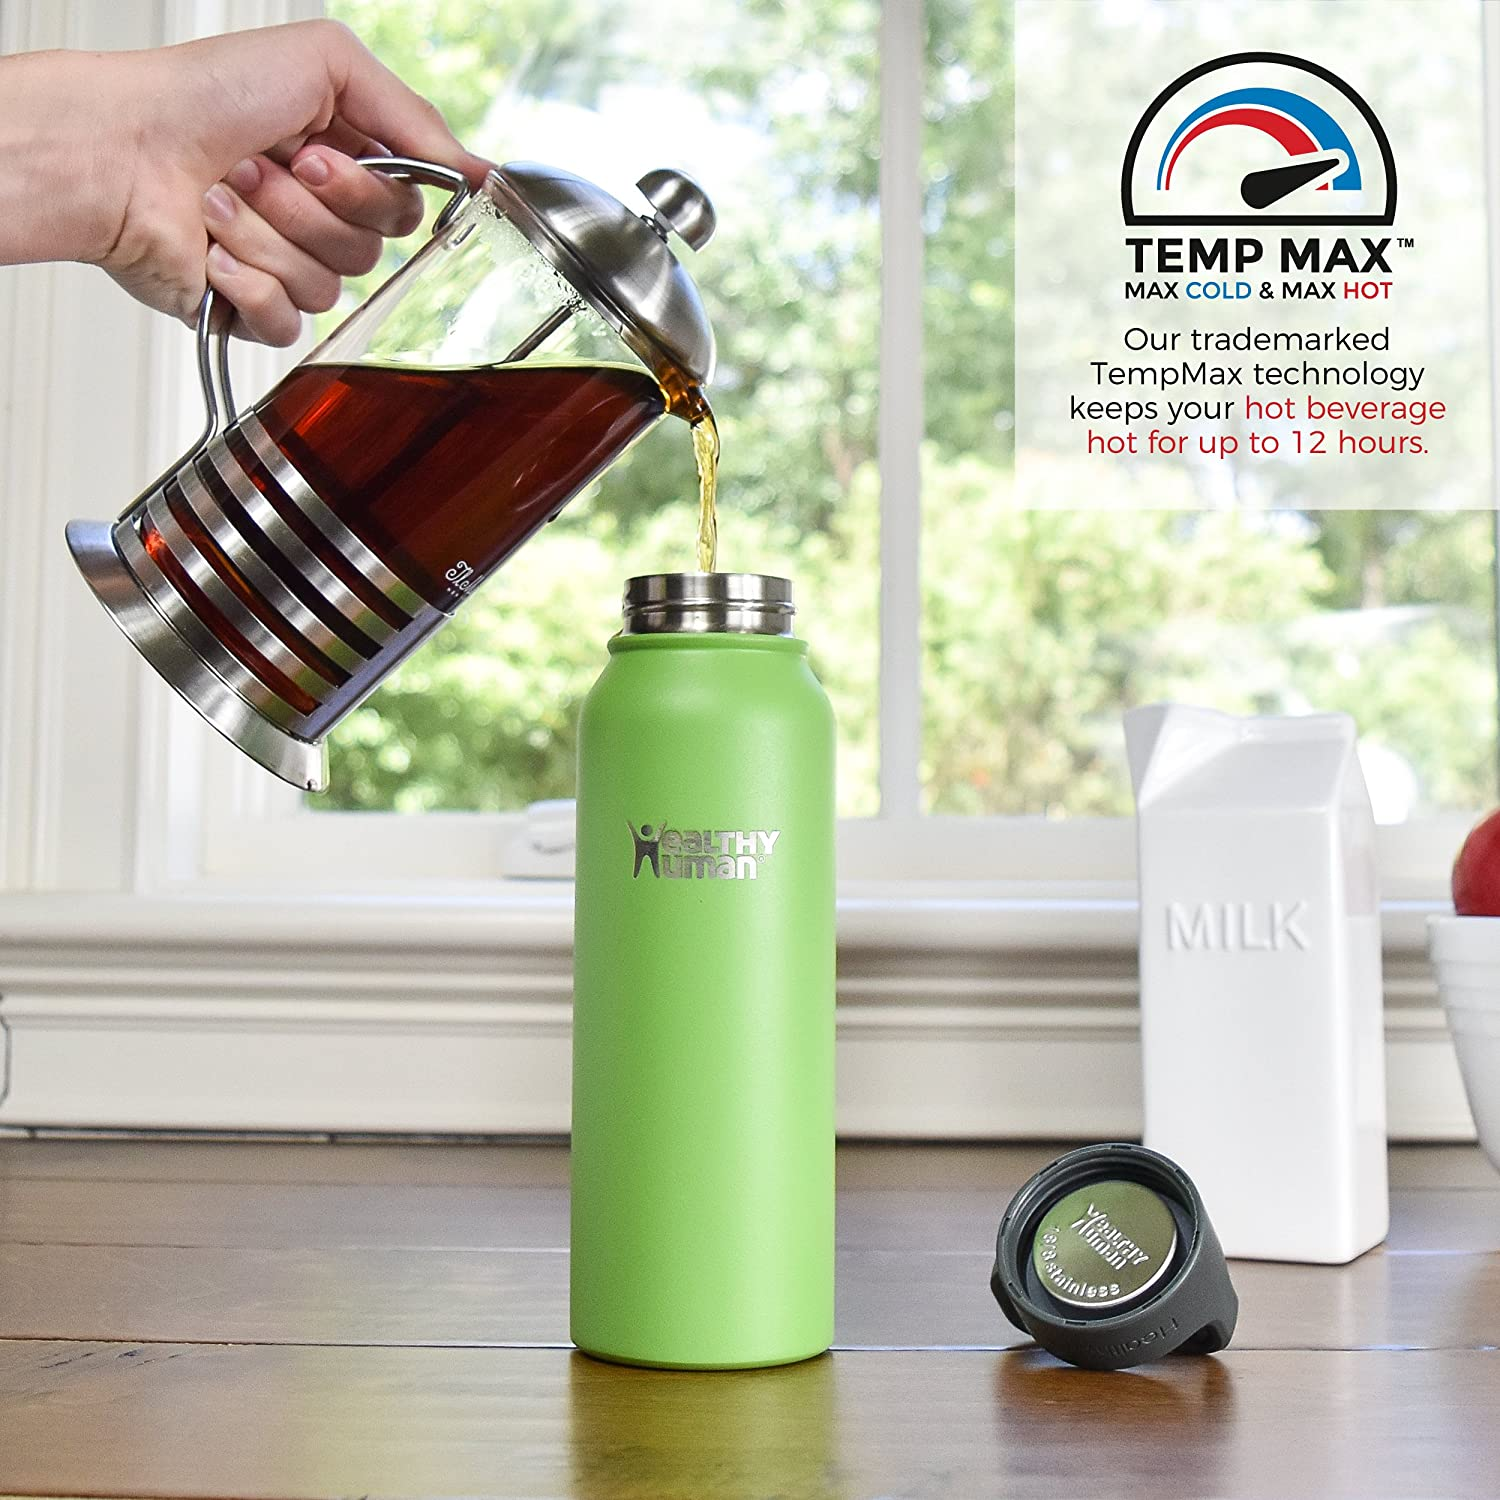 16 oz Double Walled Water Bottle 32 oz 40 oz Healthy Human Classic Collection Stainless Steel Vacuum Insulated Water Bottle 21 oz Hot 12 Hours Keeps Cold 24 Hours